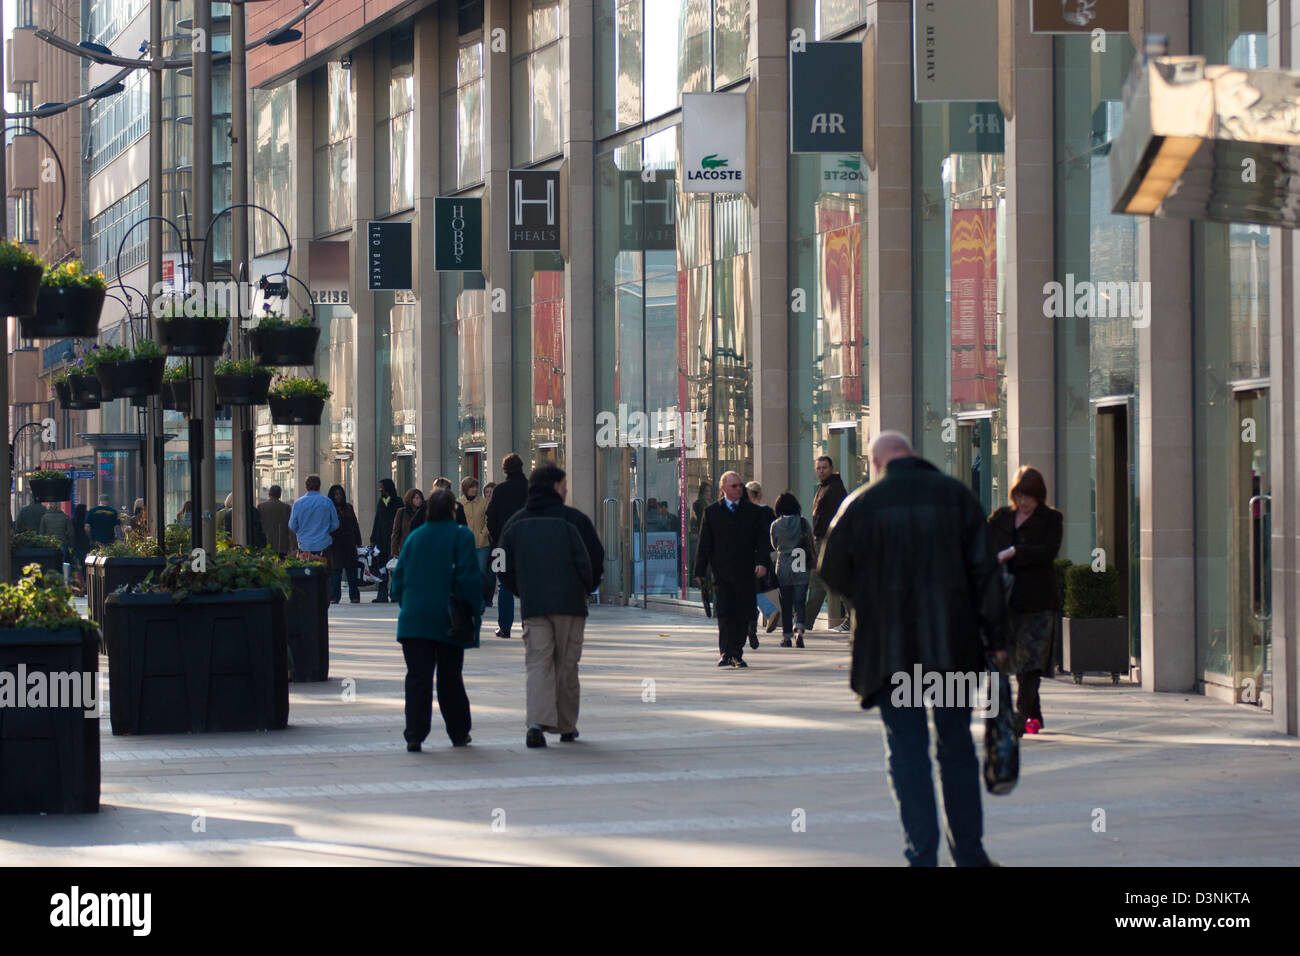 Shoppers on New Cathedral Street in Manchester - Stock Image